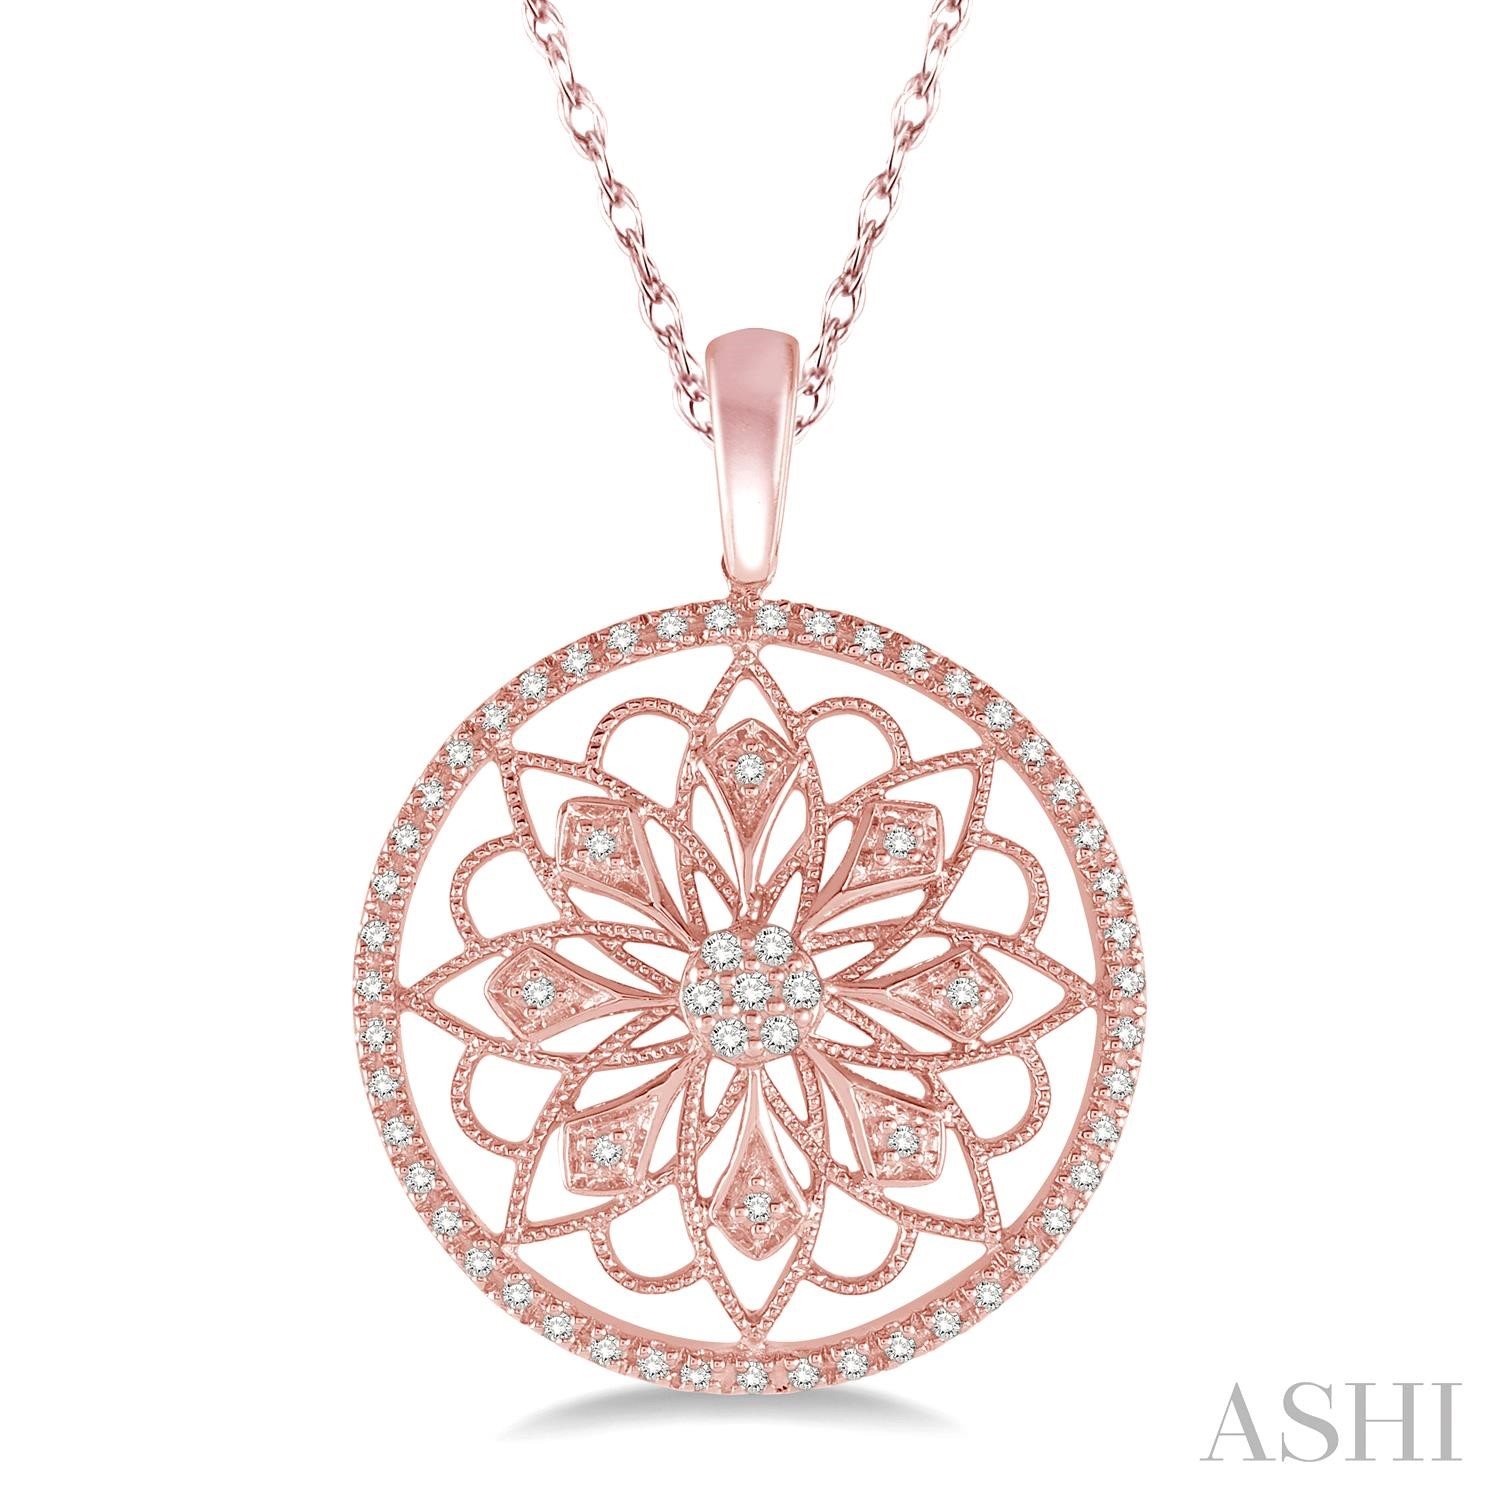 CIRCLE FLORAL DIAMOND PENDANT